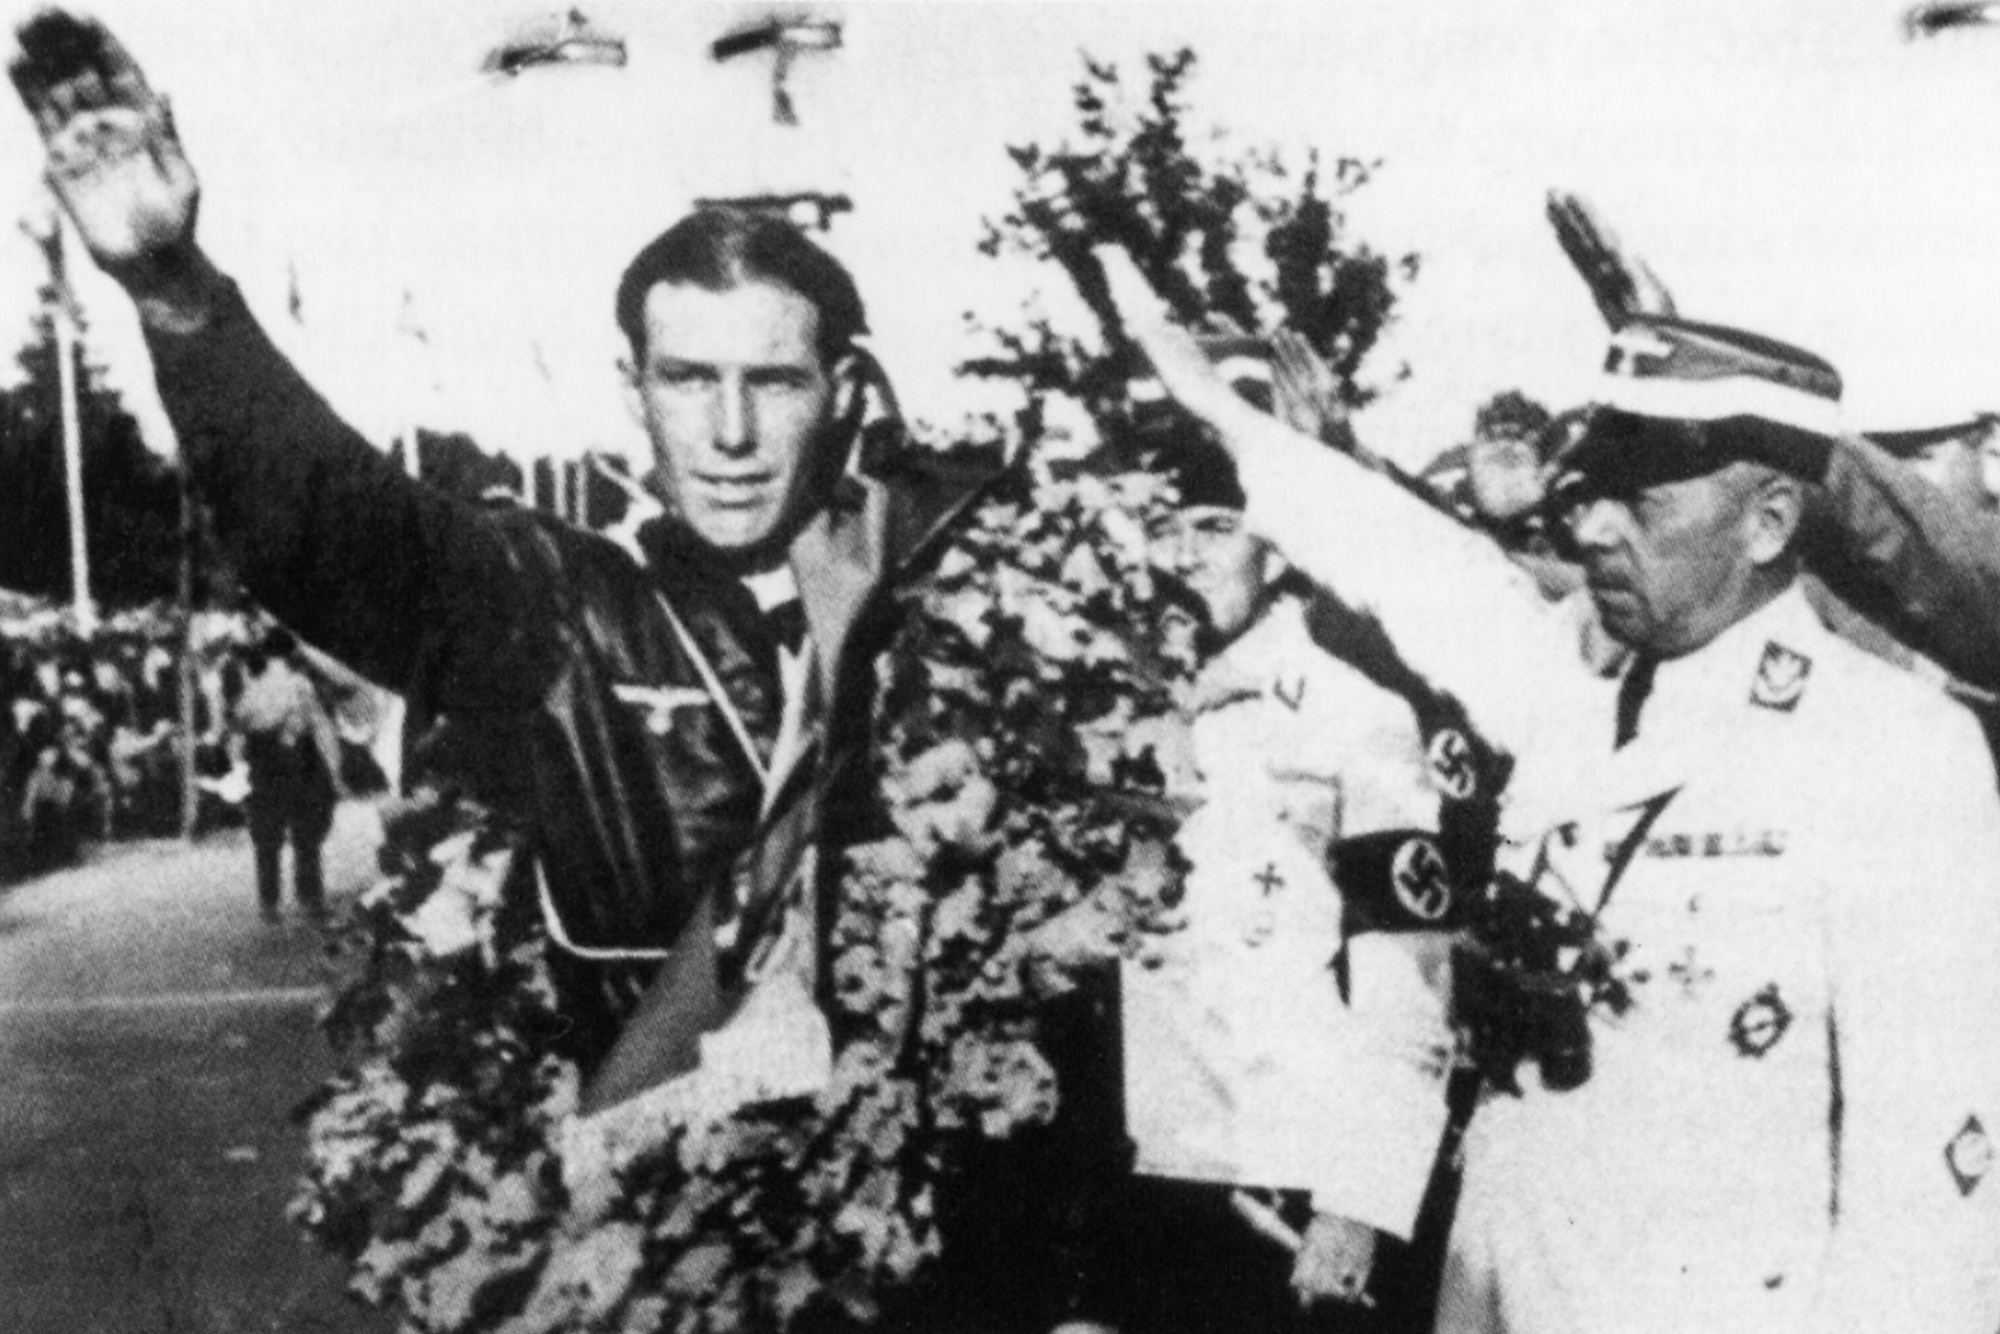 Georg Meier salutes alongside Adolf Huhnlein